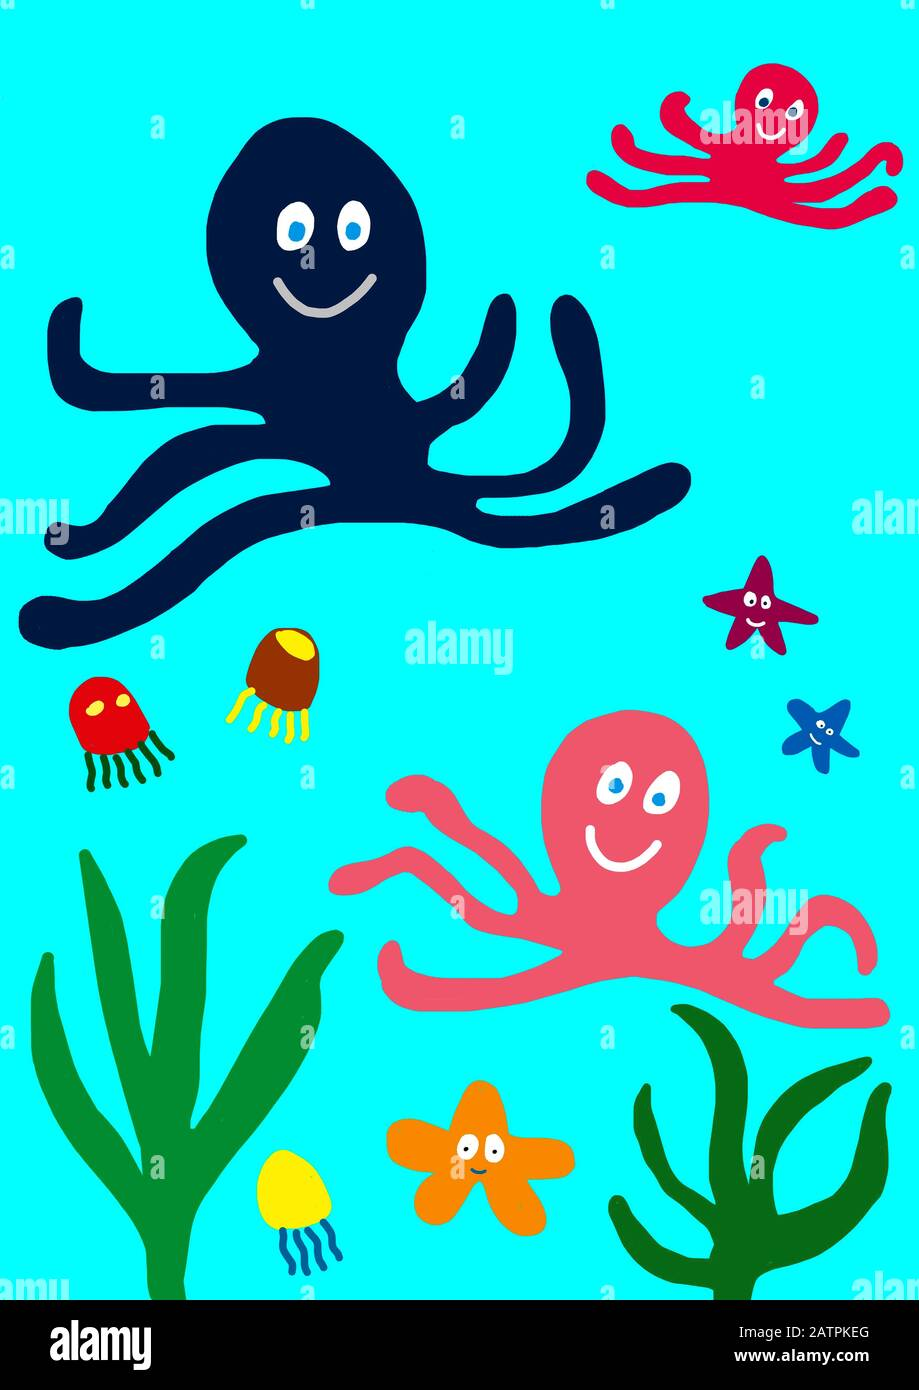 Naive illustration, children's drawing, squids, Germany Stock Photo